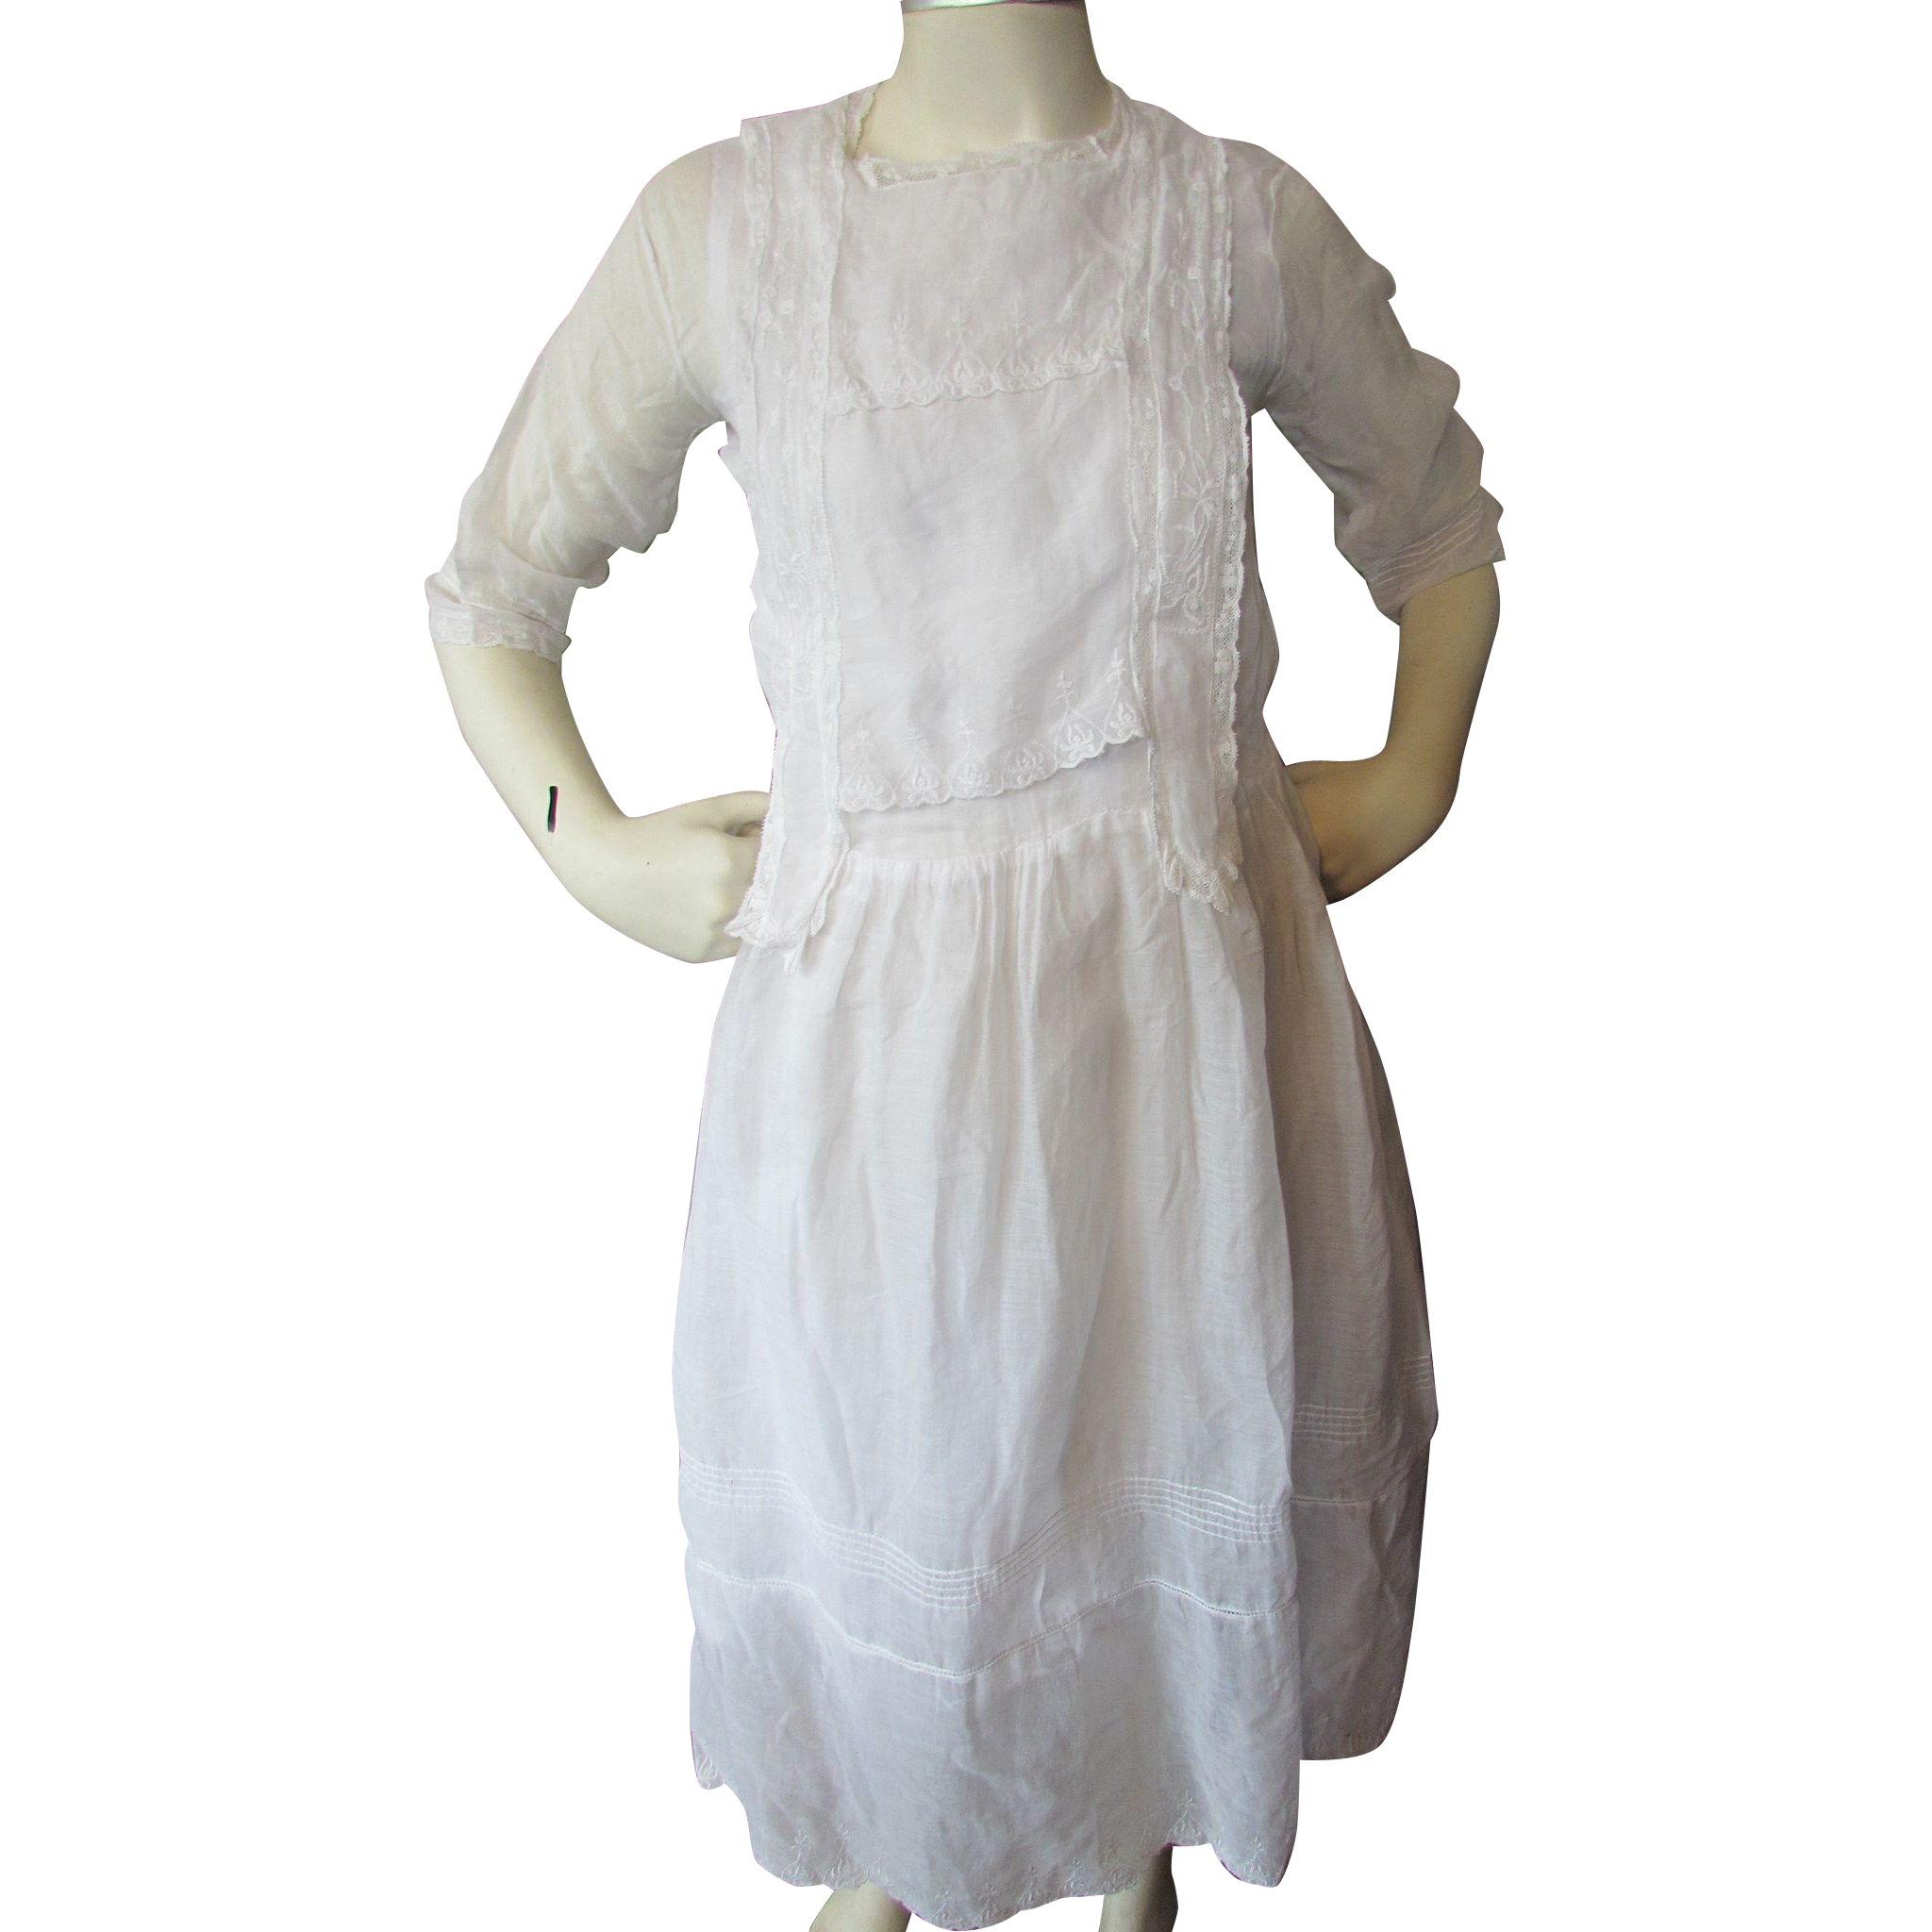 1920's Era Pre-Adolescent Girl's Summer Dress in White Lace and Embroidery with Slip